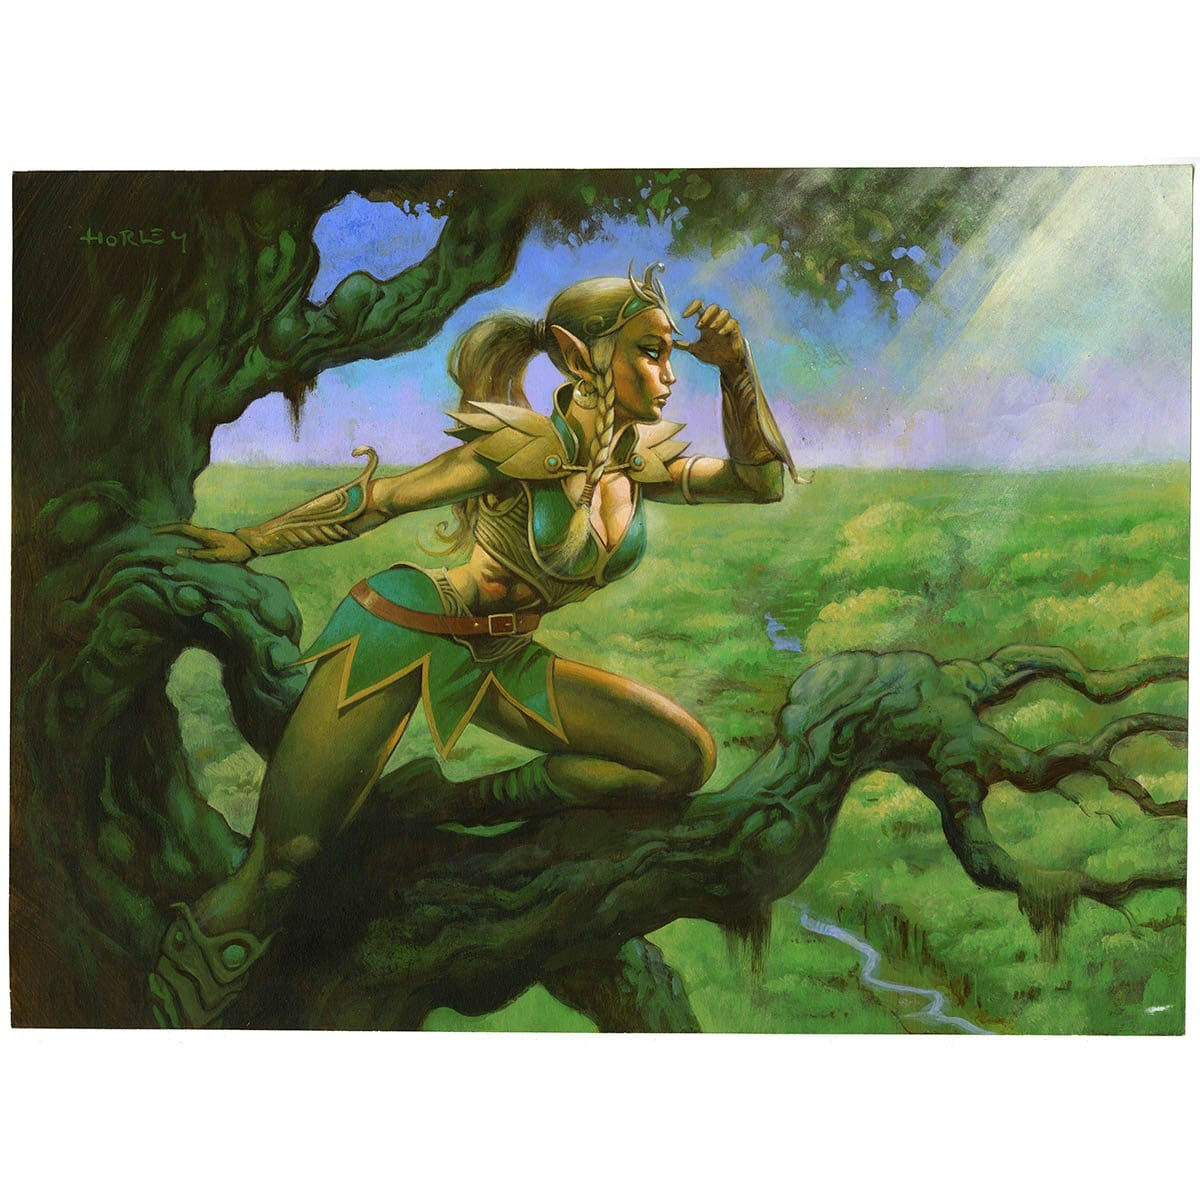 Seeker of Skybreak Print - Print - Original Magic Art - Accessories for Magic the Gathering and other card games